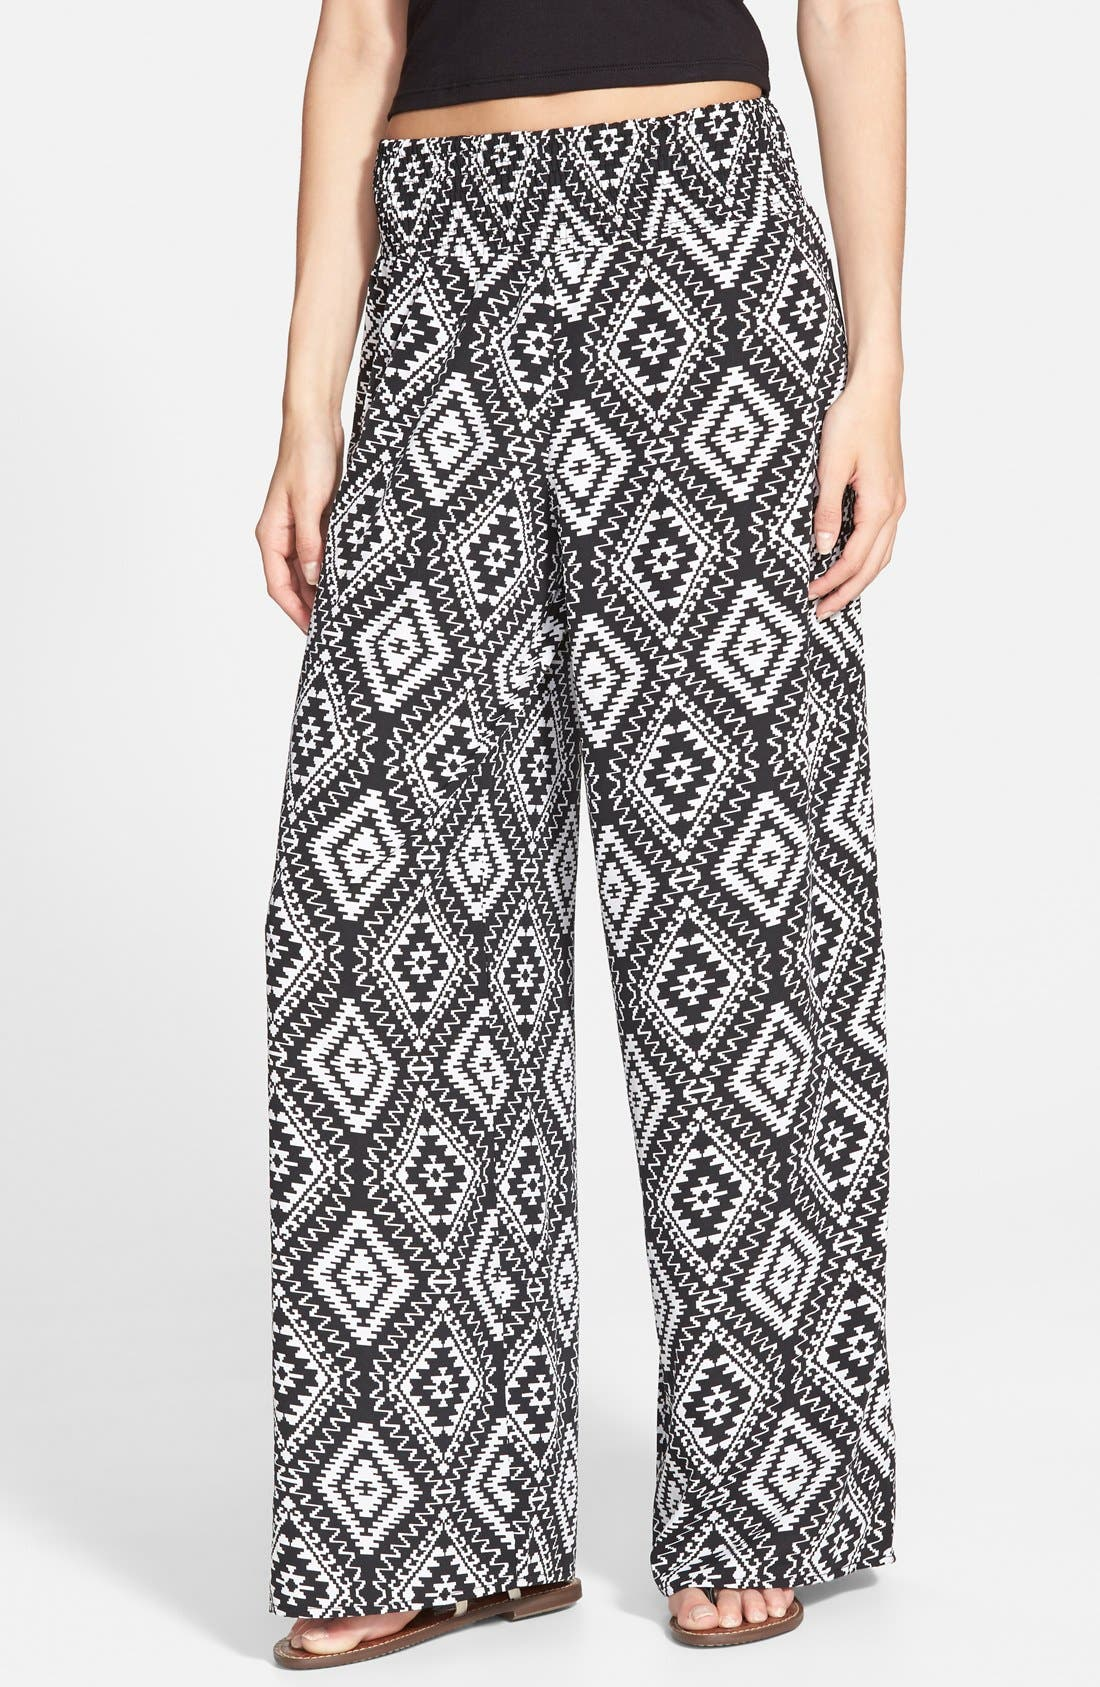 Alternate Image 1 Selected - Zoe and Rose Print Smocked Waist Palazzo Pants